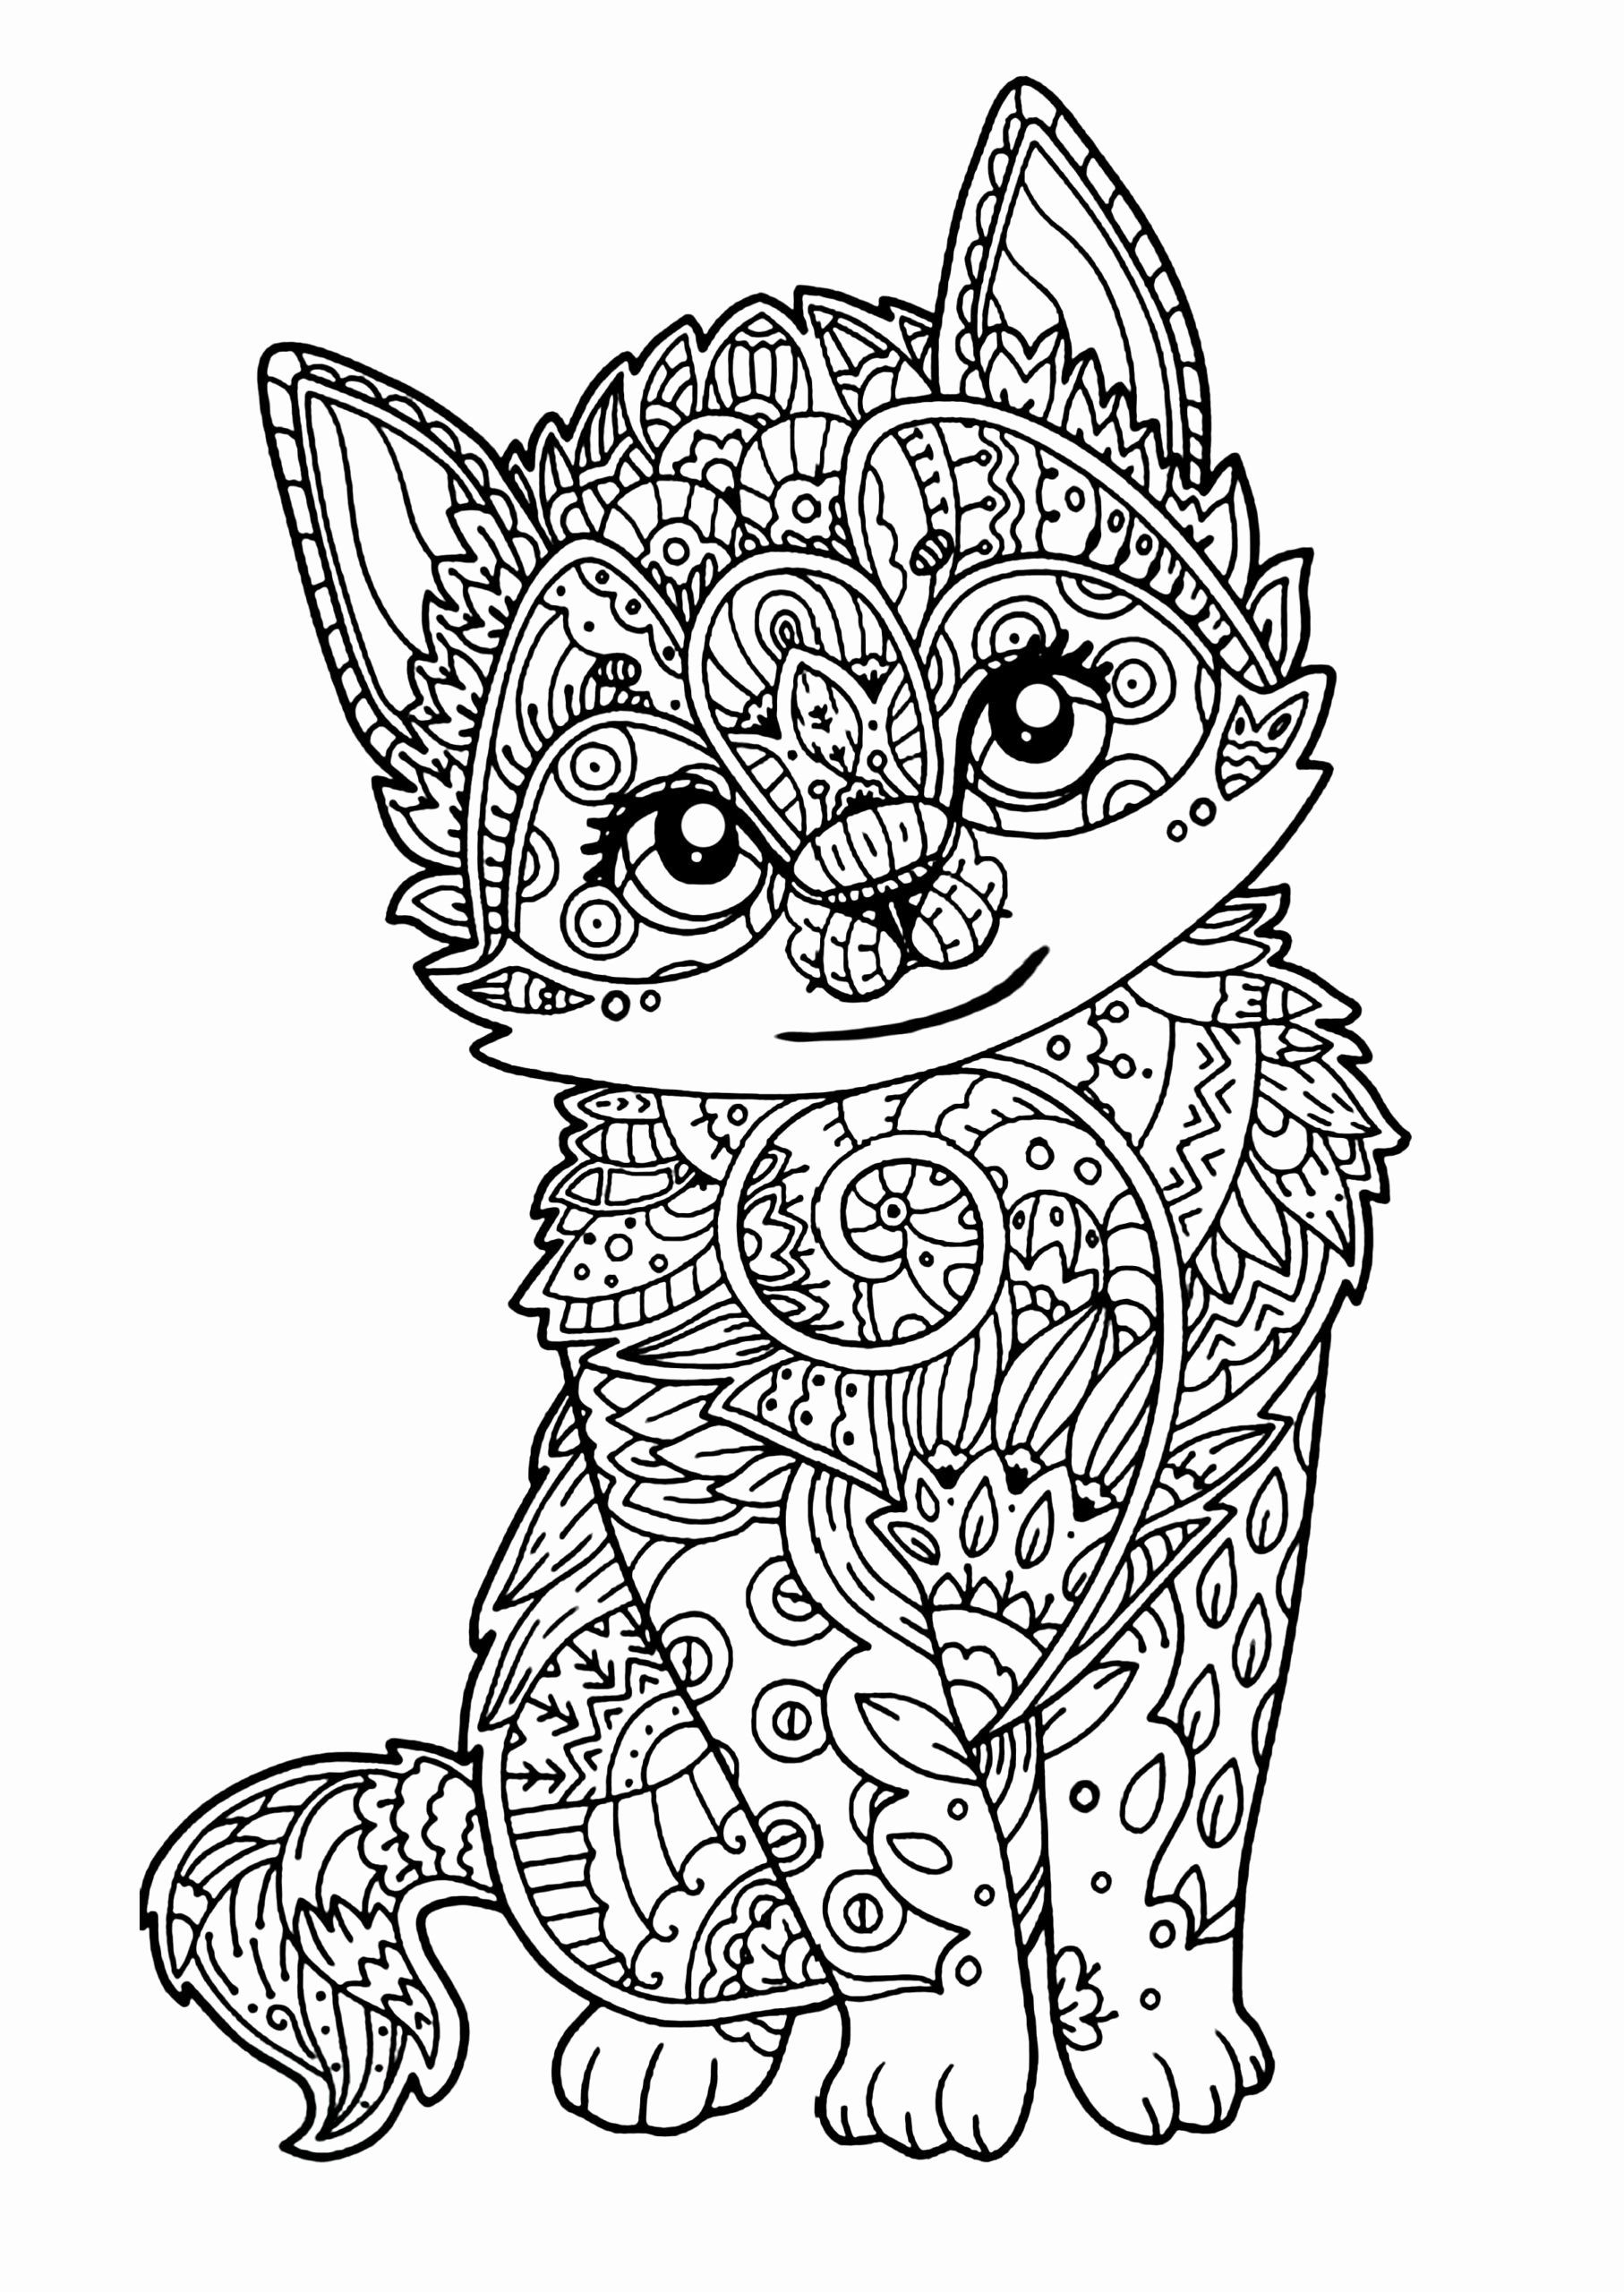 Animal Coloring Pages For Girls Fresh Coloring Pages Coloring Book Crayola Free To Print Kawaii In 2020 Cat Coloring Book Kittens Coloring Animal Coloring Books